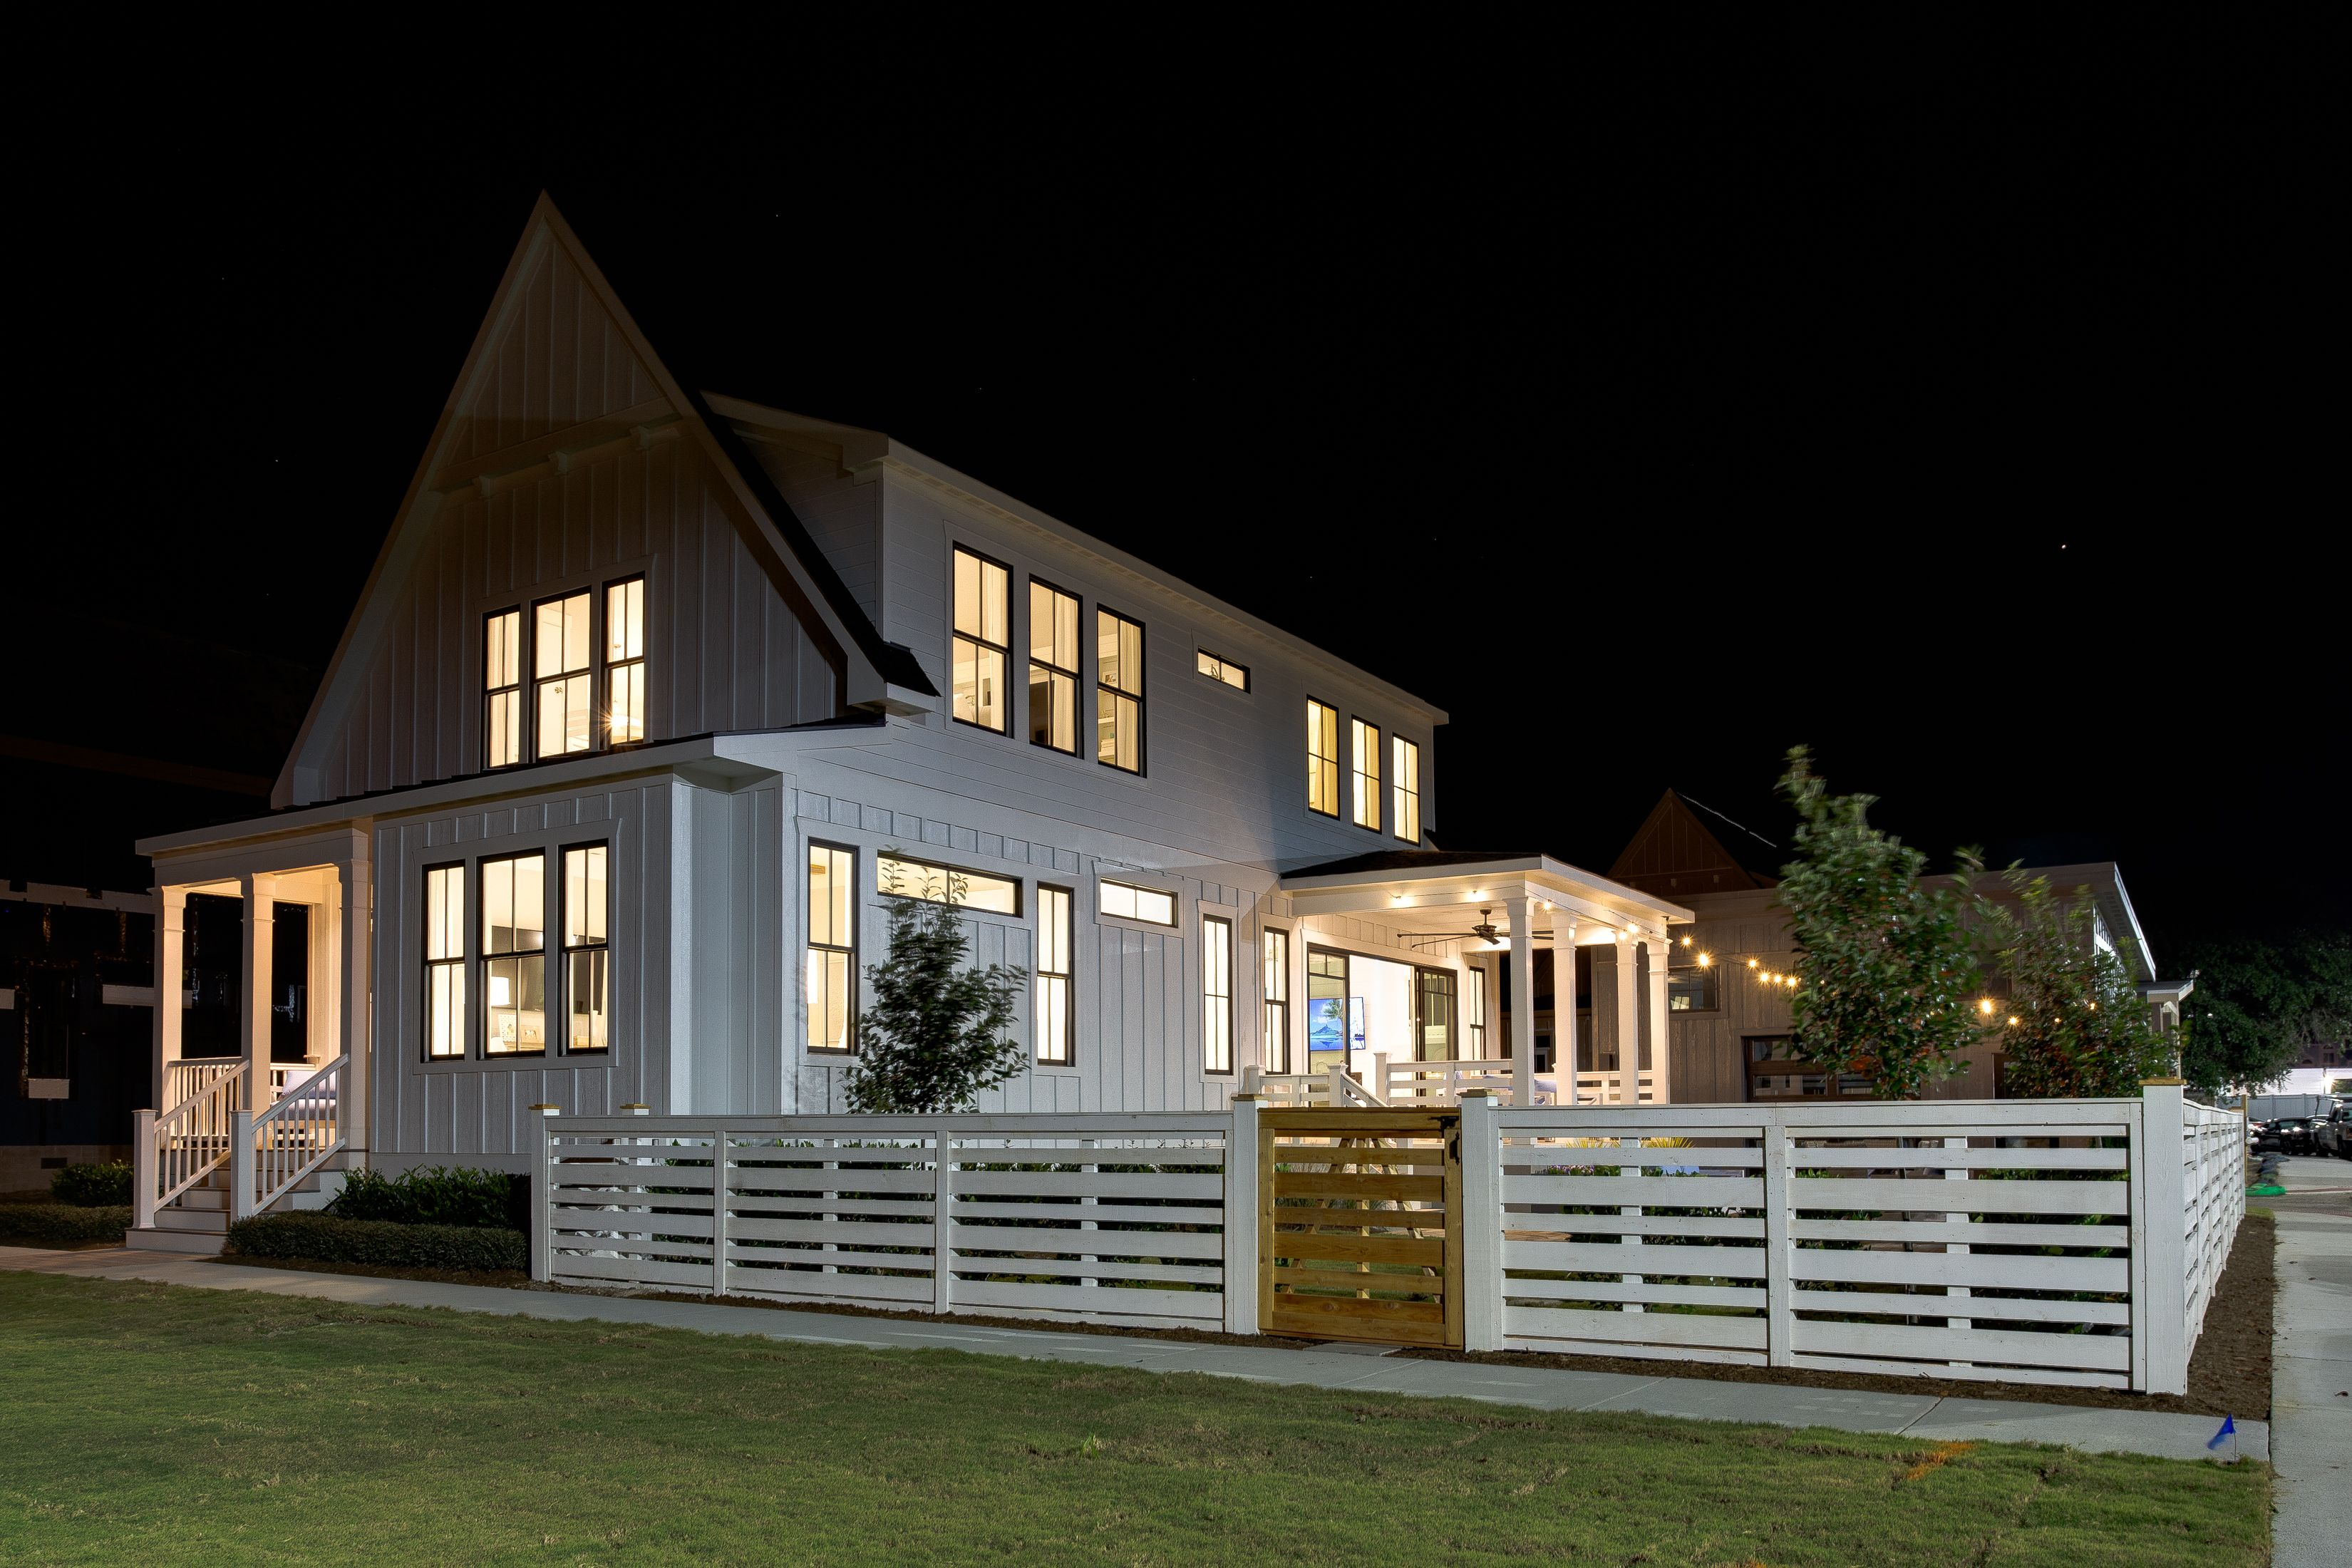 'Marina Cottages at East Beach' by Stephen Alexander Homes in Norfolk-Newport News